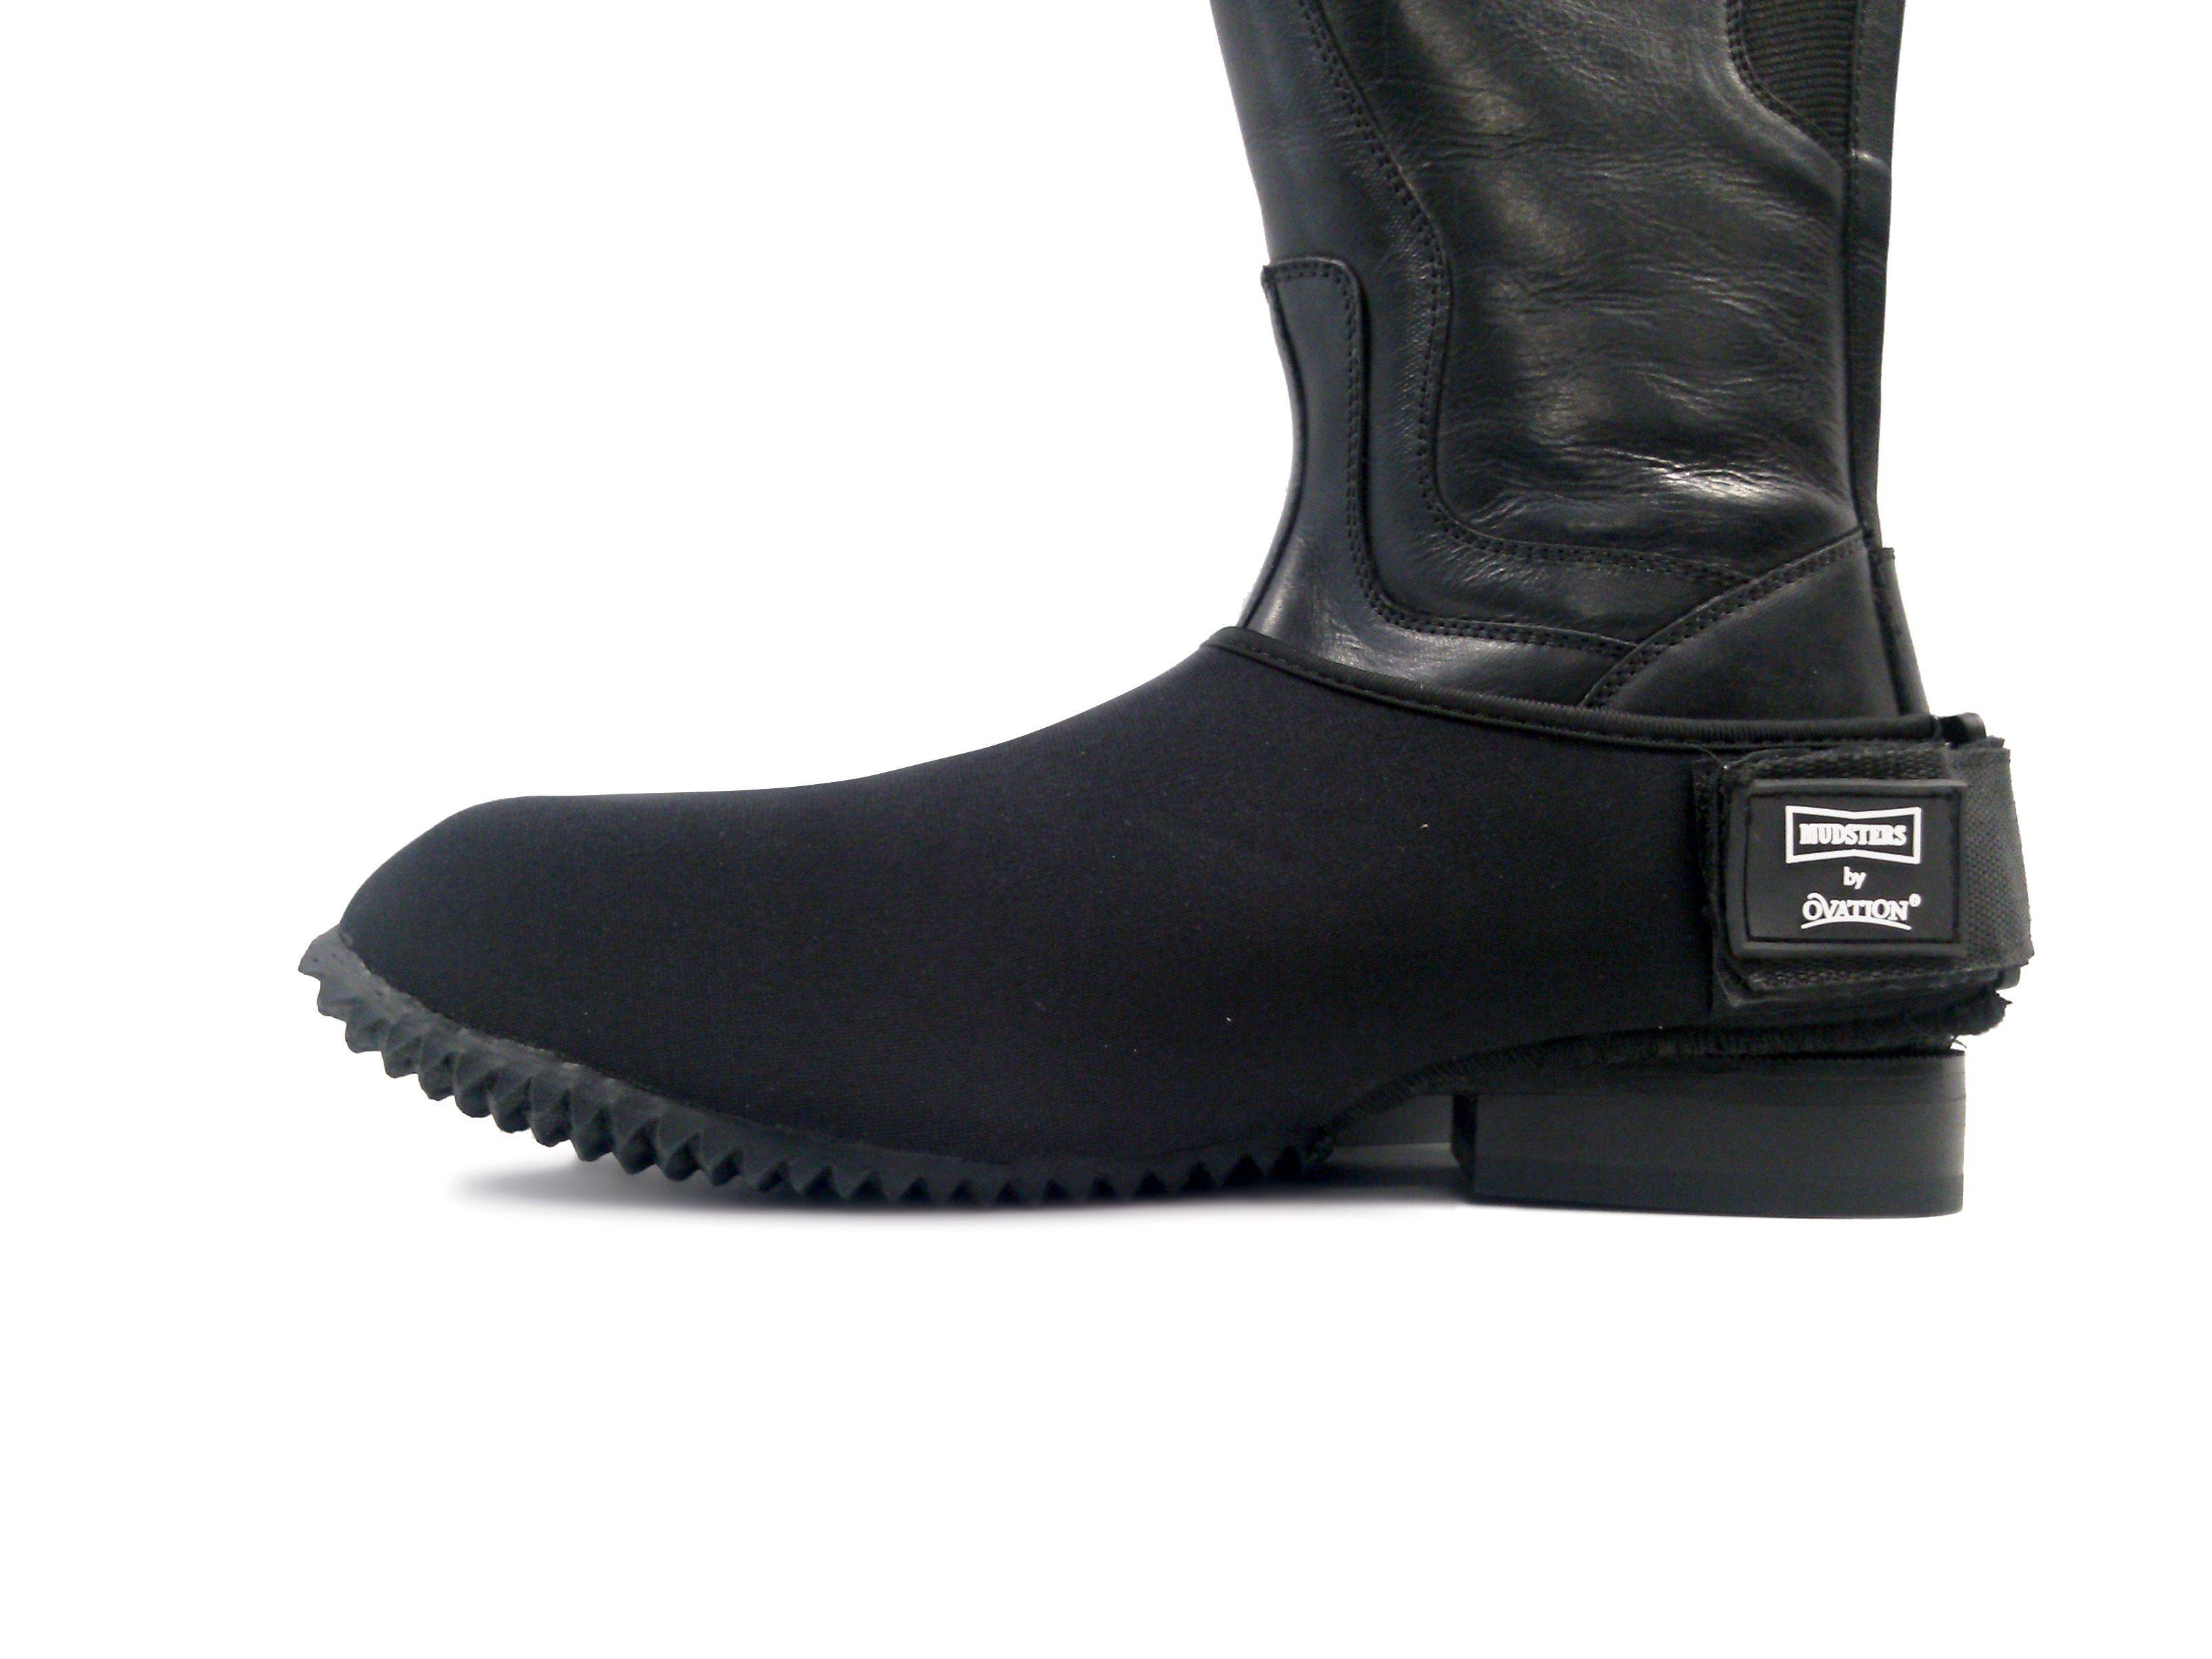 Mudster Shoe & Boot Saver